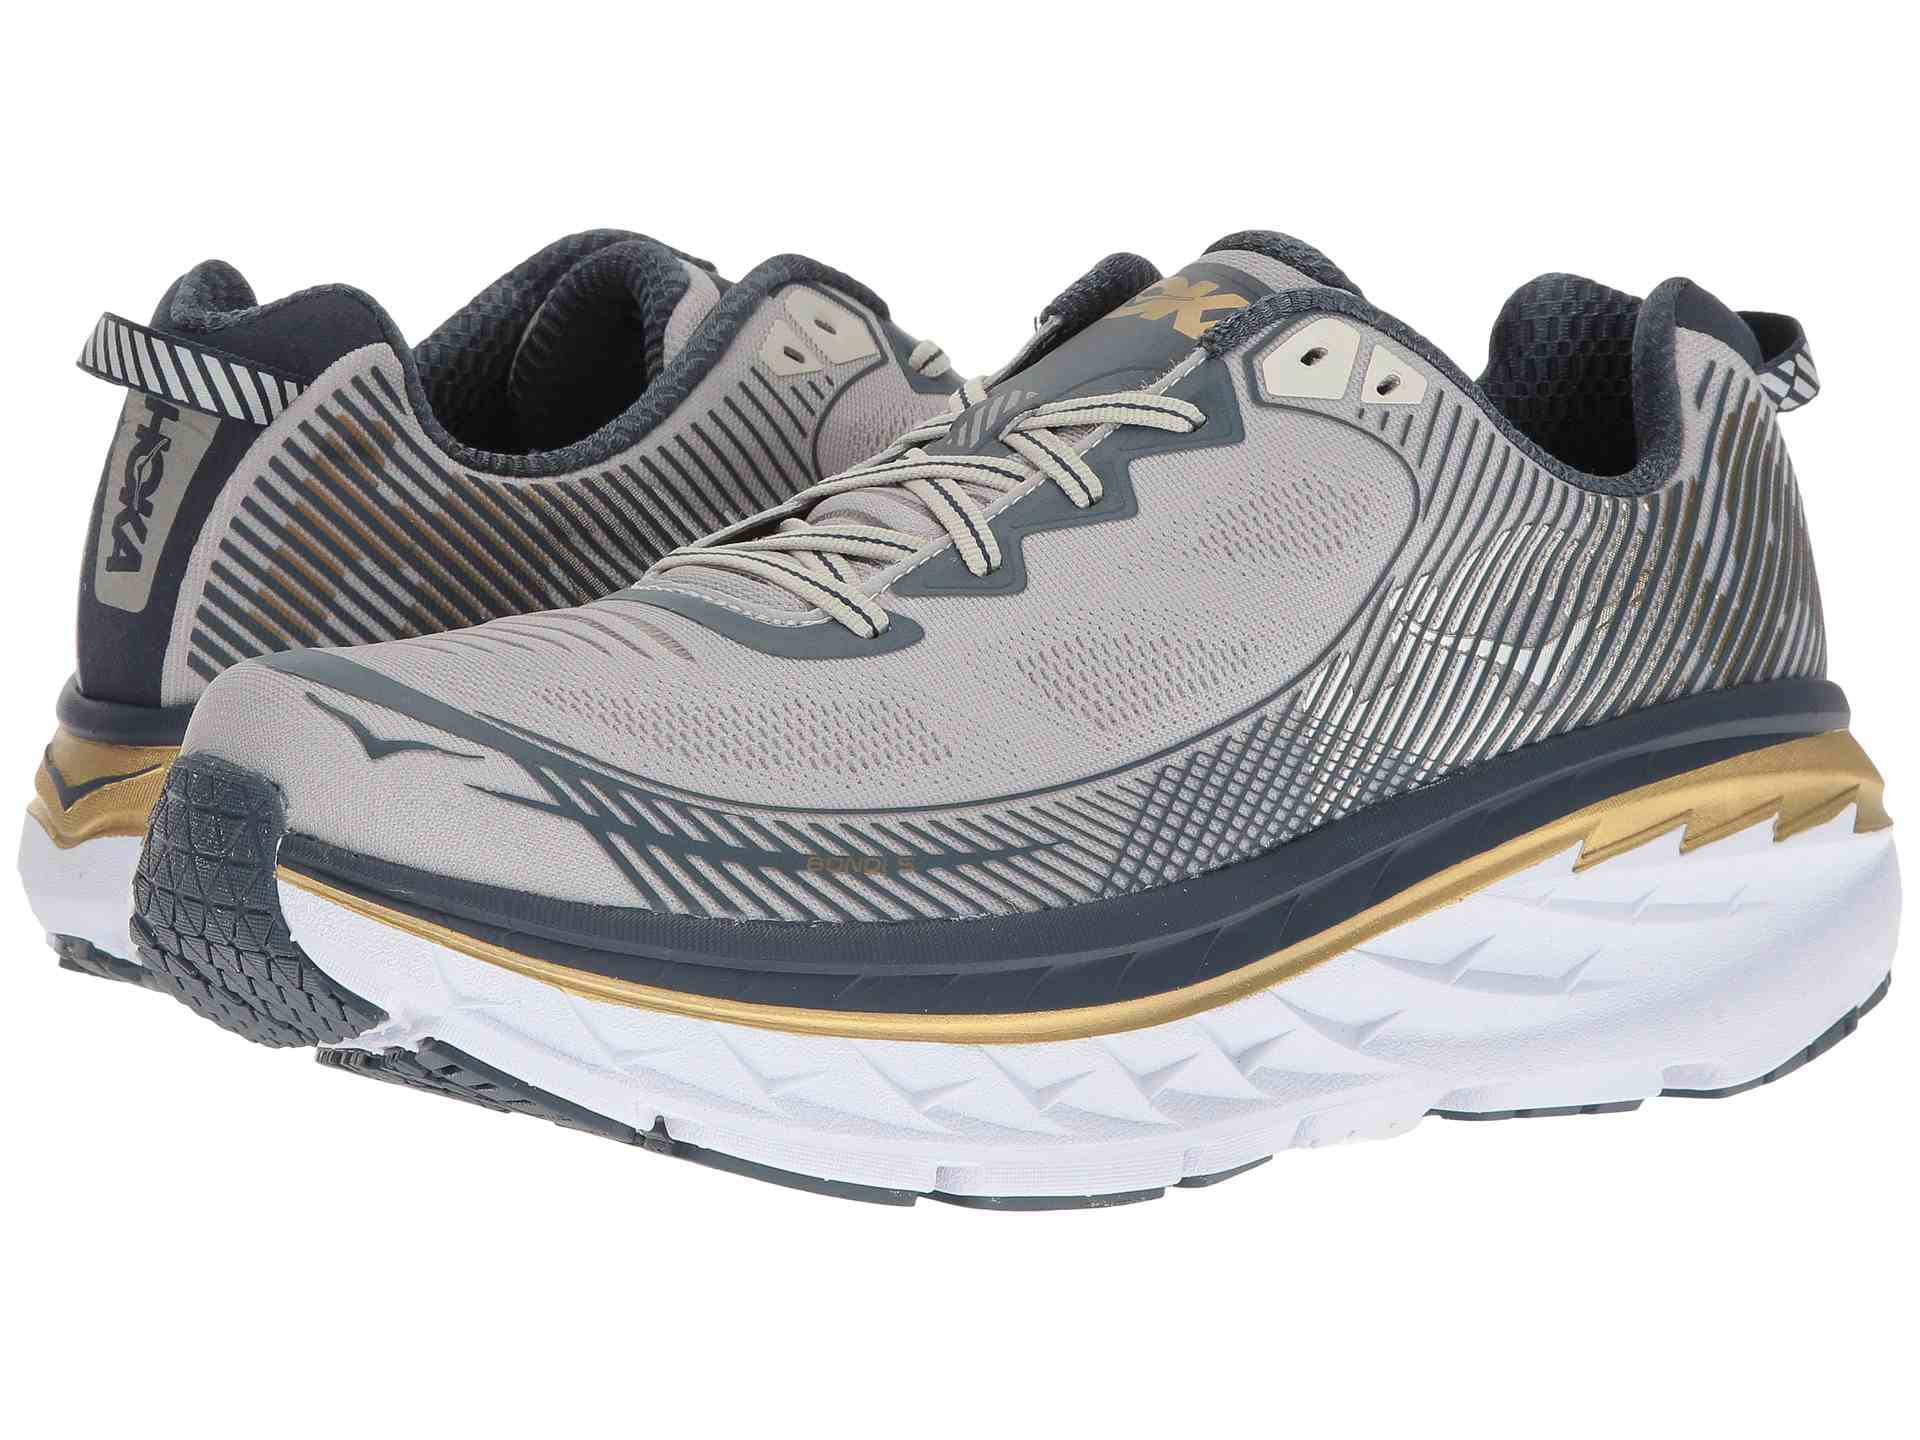 Best for Plantar Fasciitis: Hoka One One Men's Bondi Running Shoes